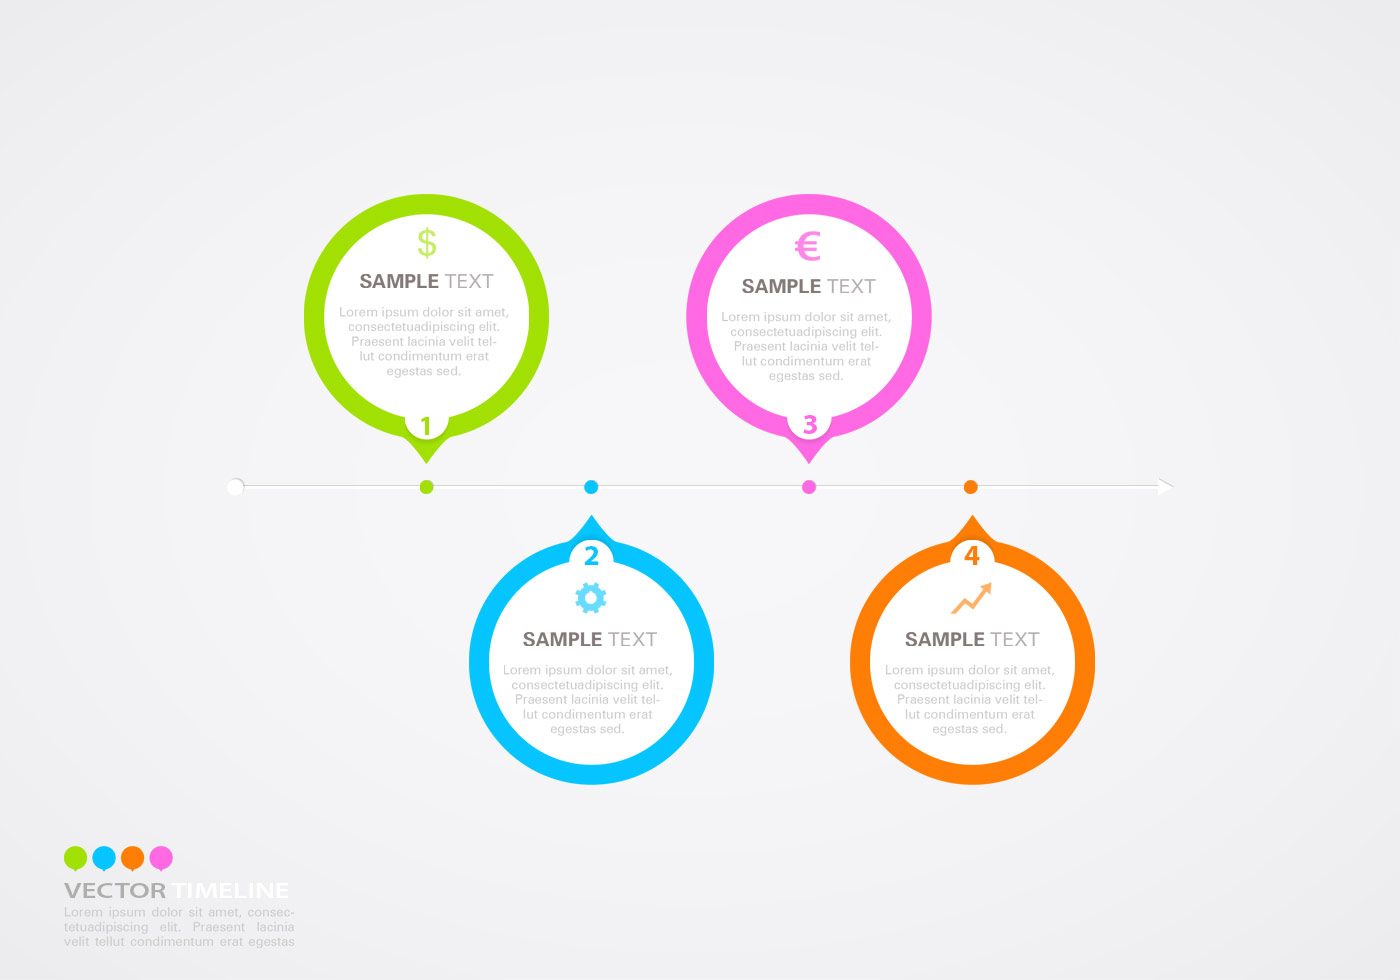 Photoshop Templates: Horizontal Timeline Infographic PSD Template